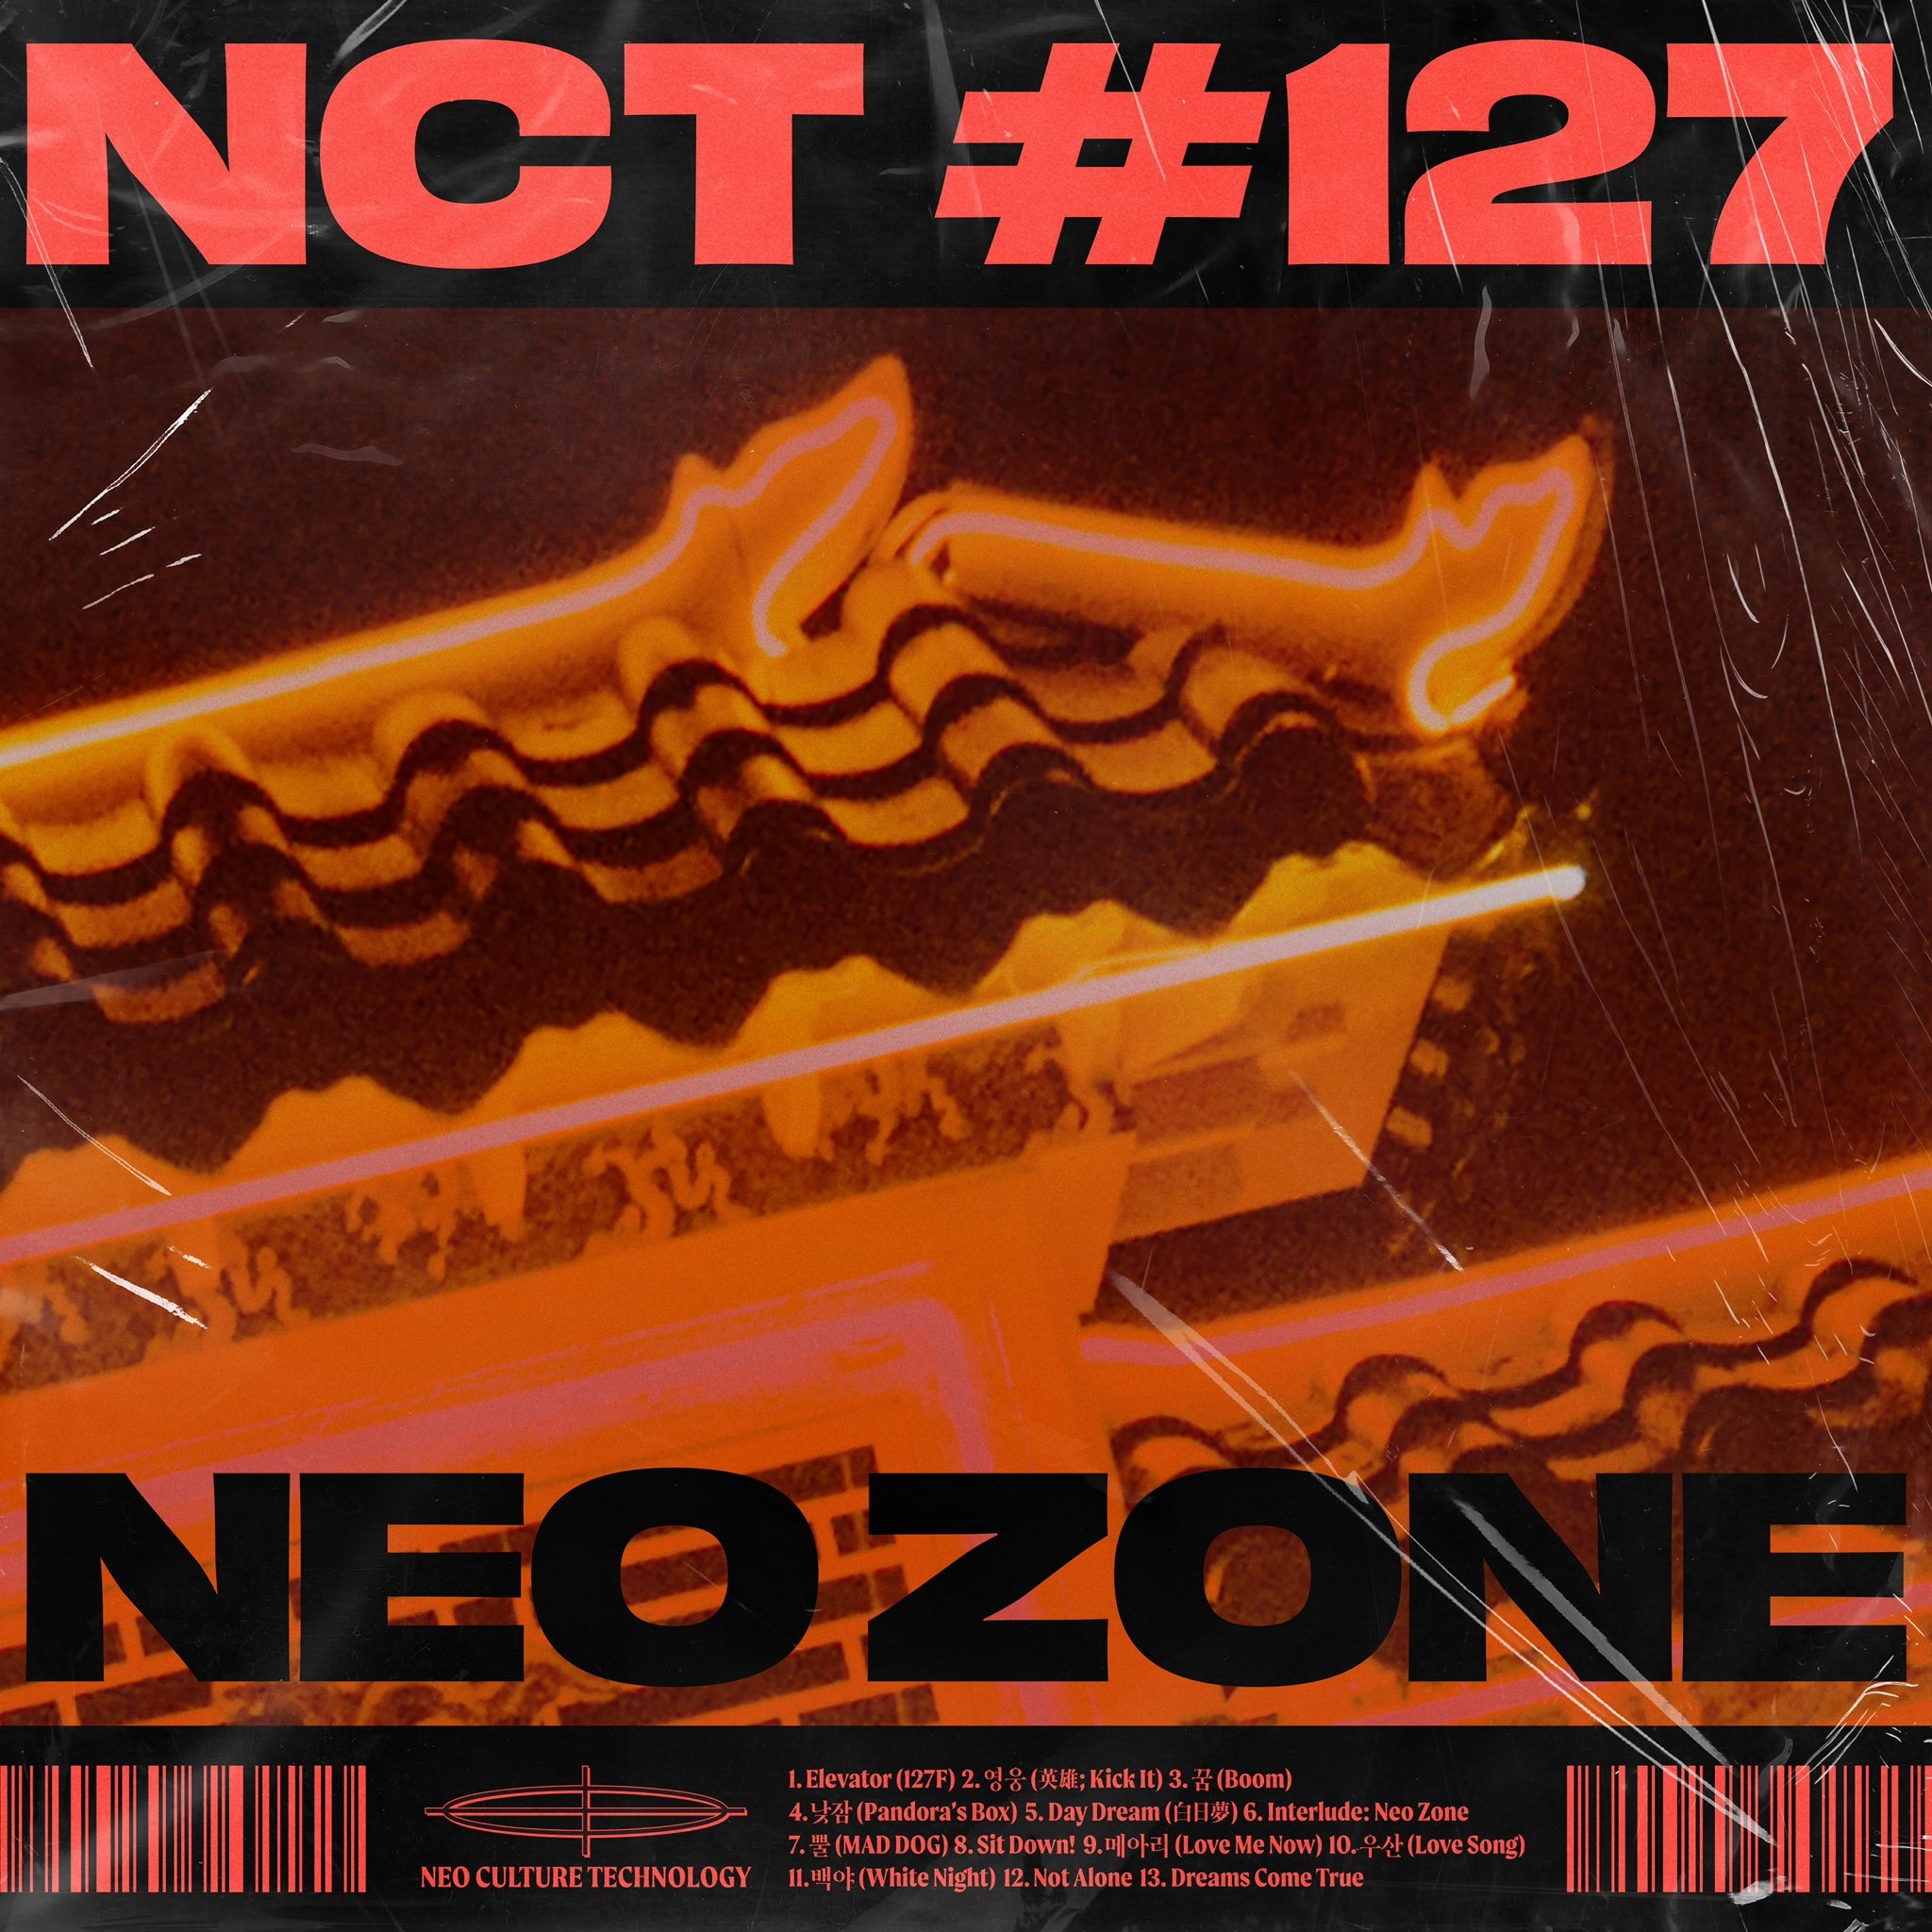 "NCT SENSATION on Twitter: ""(INFO) 200214 รายชื่อเพลงในอัลบั้ม 'NCT #127 Neo Zone' 1. Elevator (127F) 2. Kick It 3. Boom 4. Pandora's Box 5. Day Dream 6. Interlude: Neo Zone 7. MAD DOG"